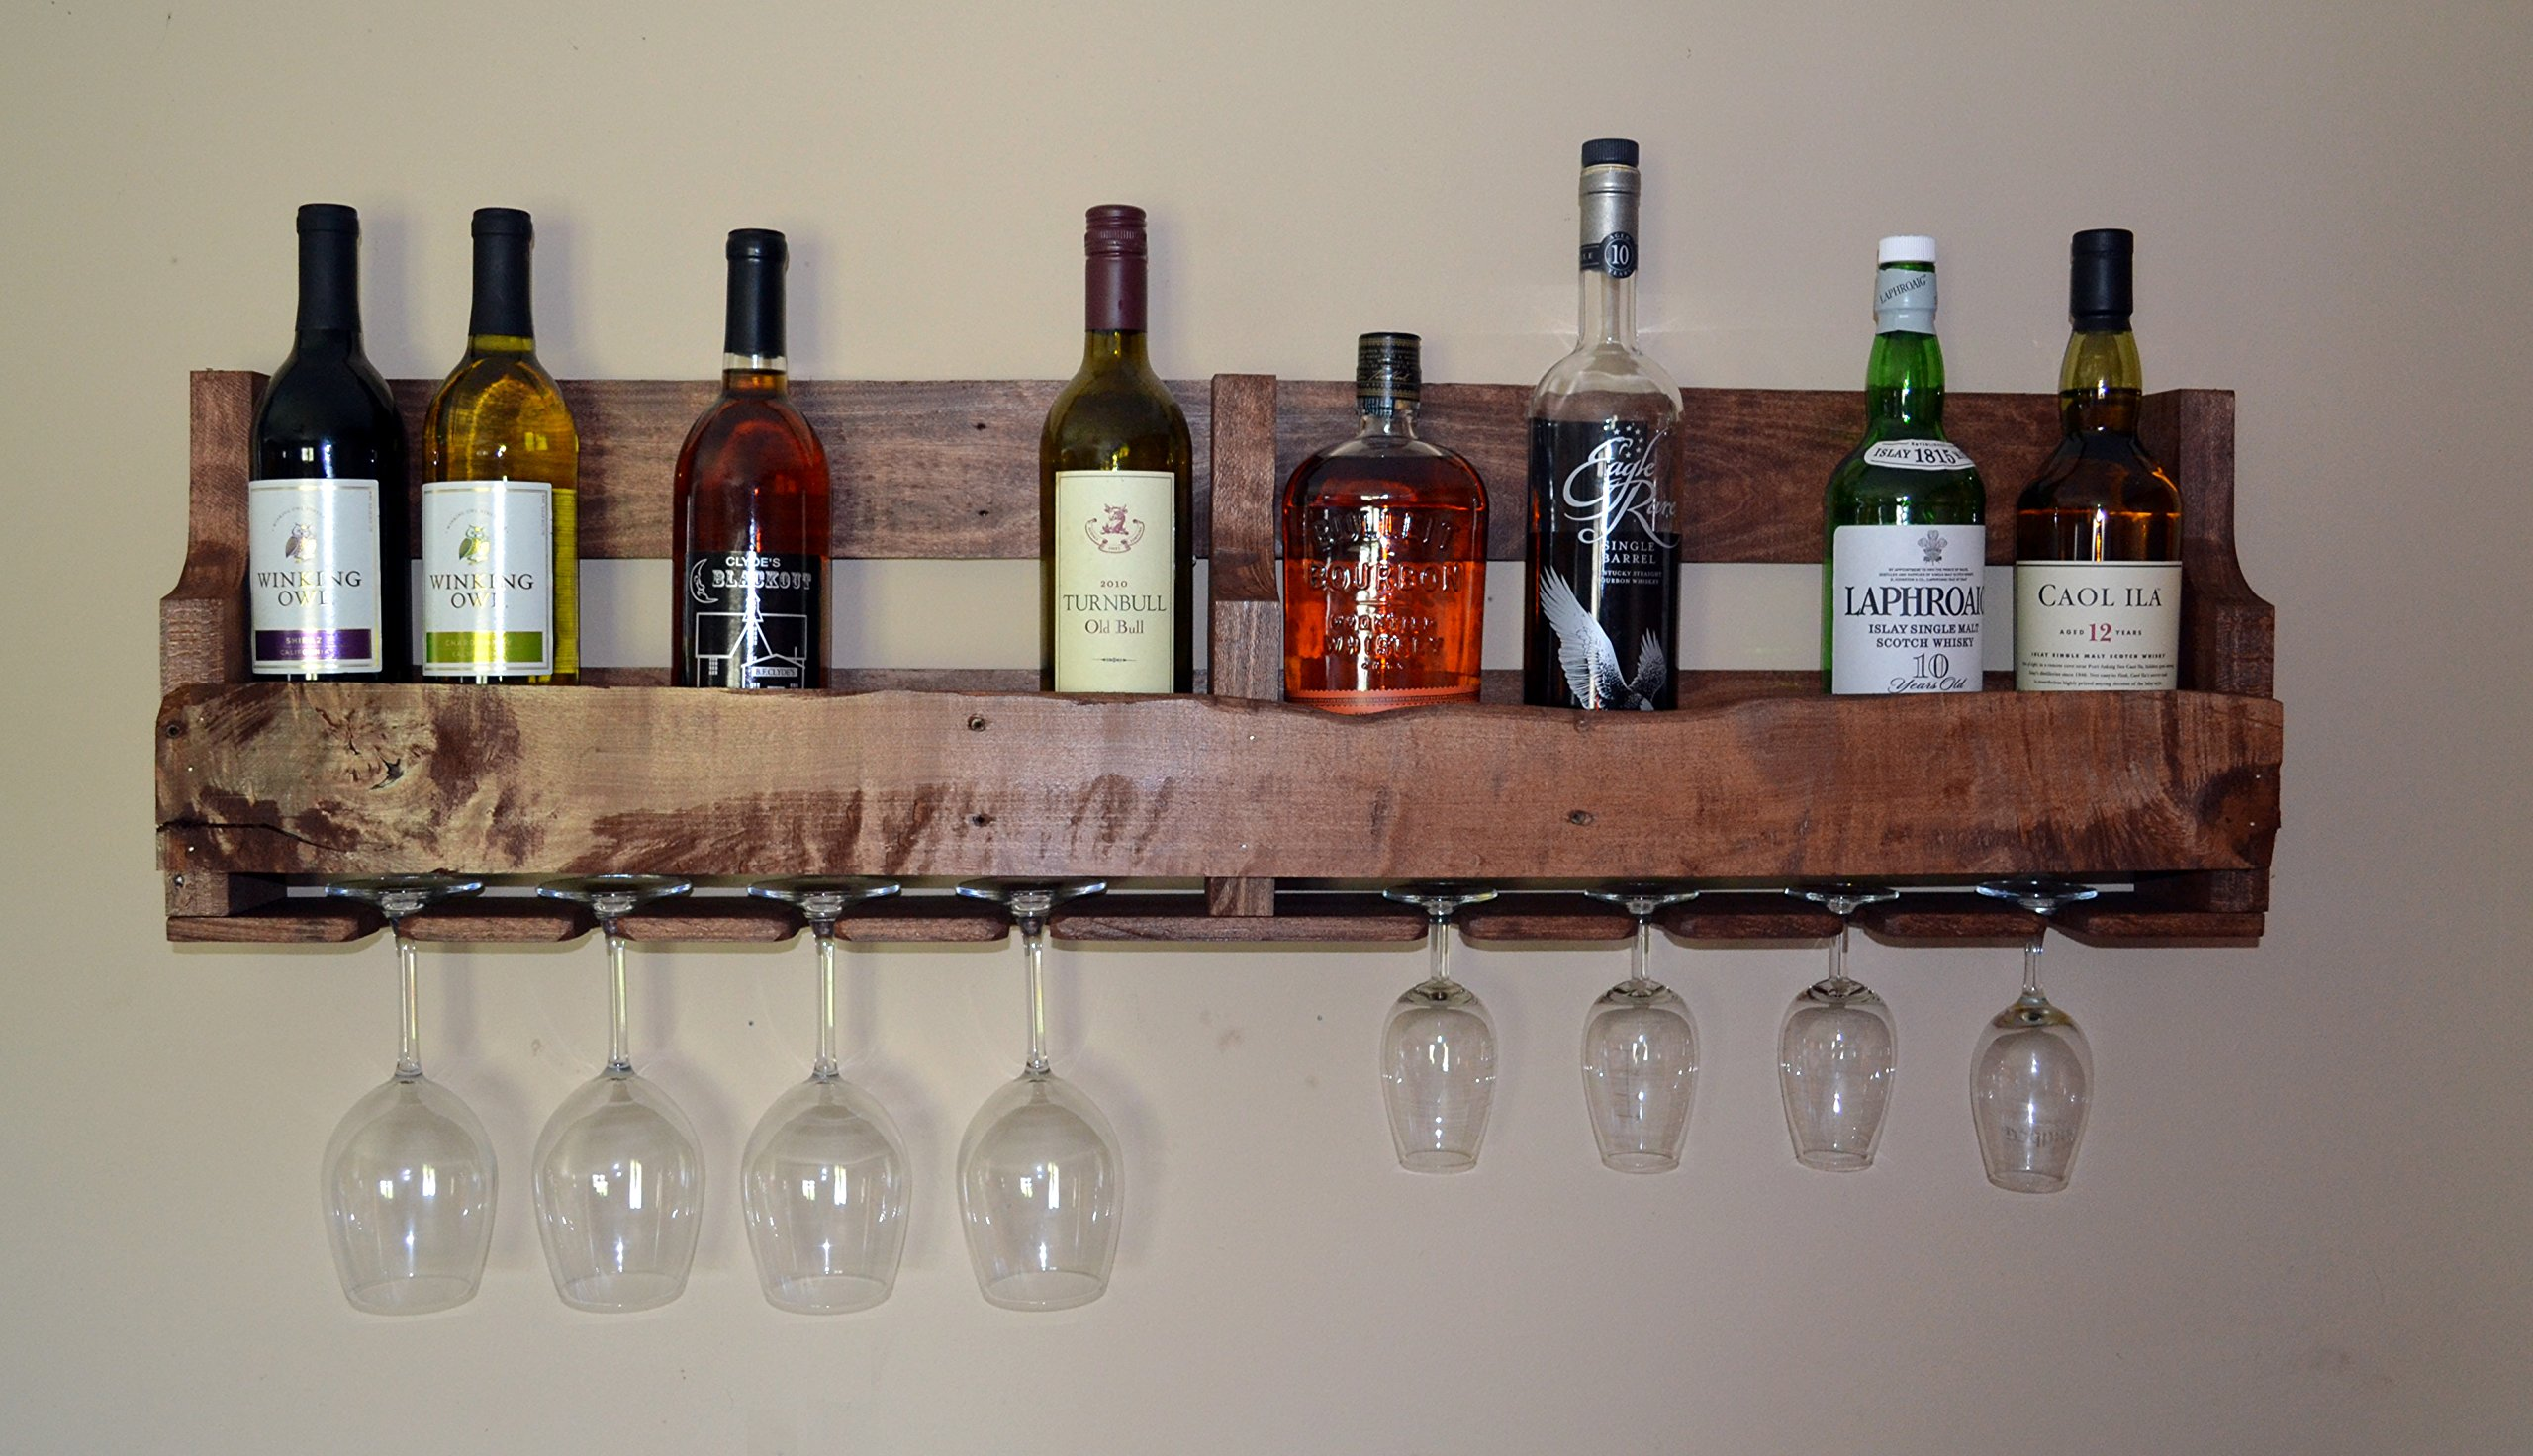 Turnbull FarmsTM Upcycled Wooden Wine Rack with Glass Holders (40'', English Chestnut) - Multiple Sizes/Colors